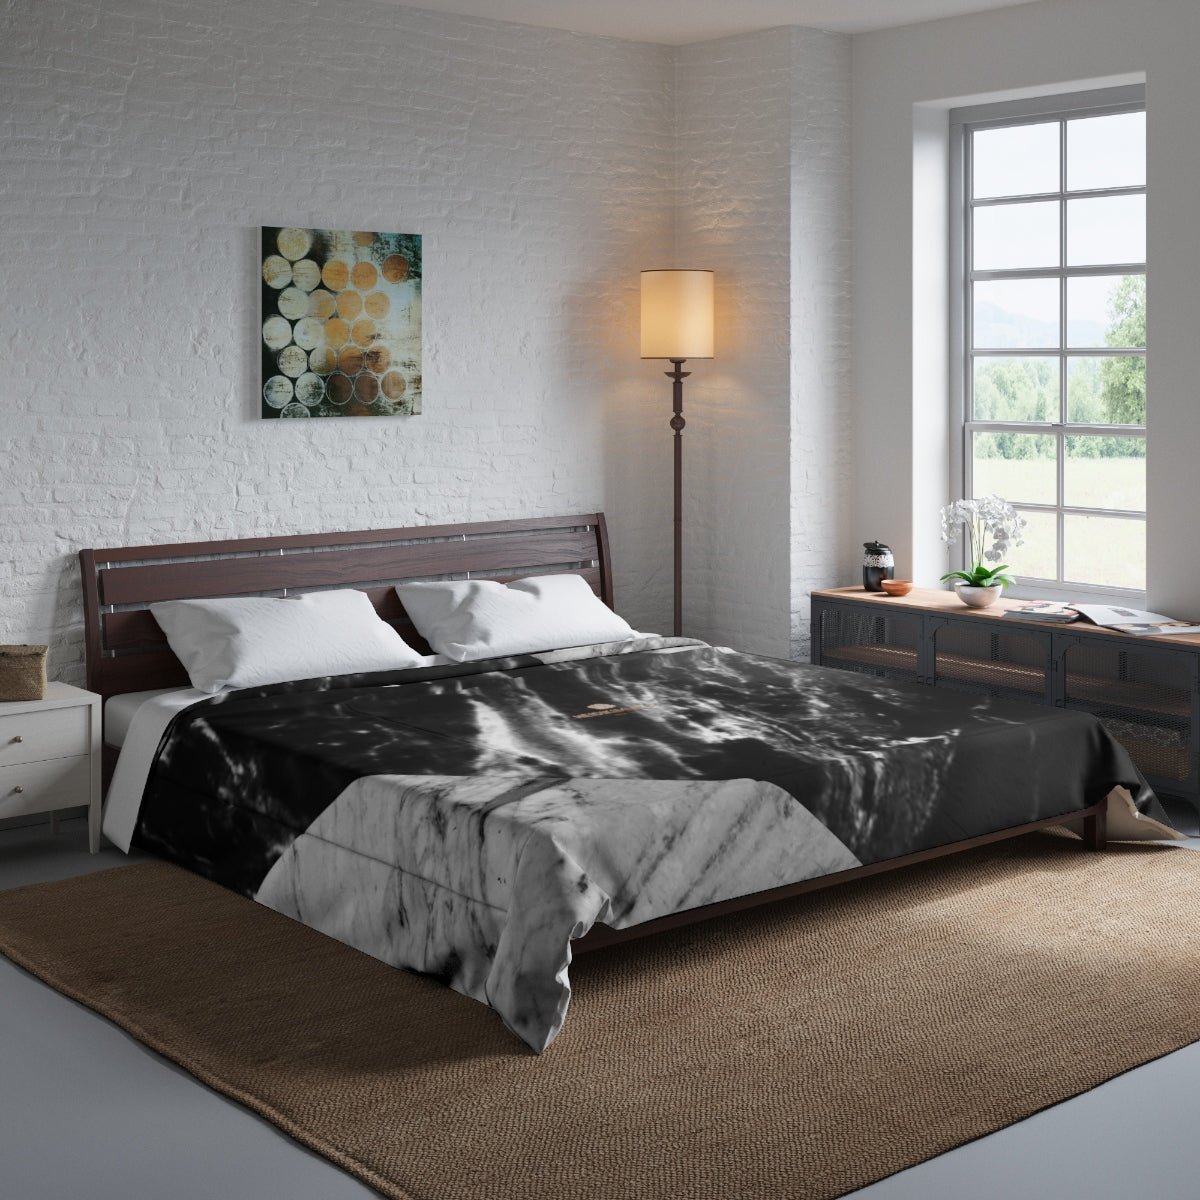 Gray Black White Marble Print Comforter For King/Queen/Full/Twin Bed - Made in USA-Comforter-104x88 (King Size)-Heidi Kimura Art LLC